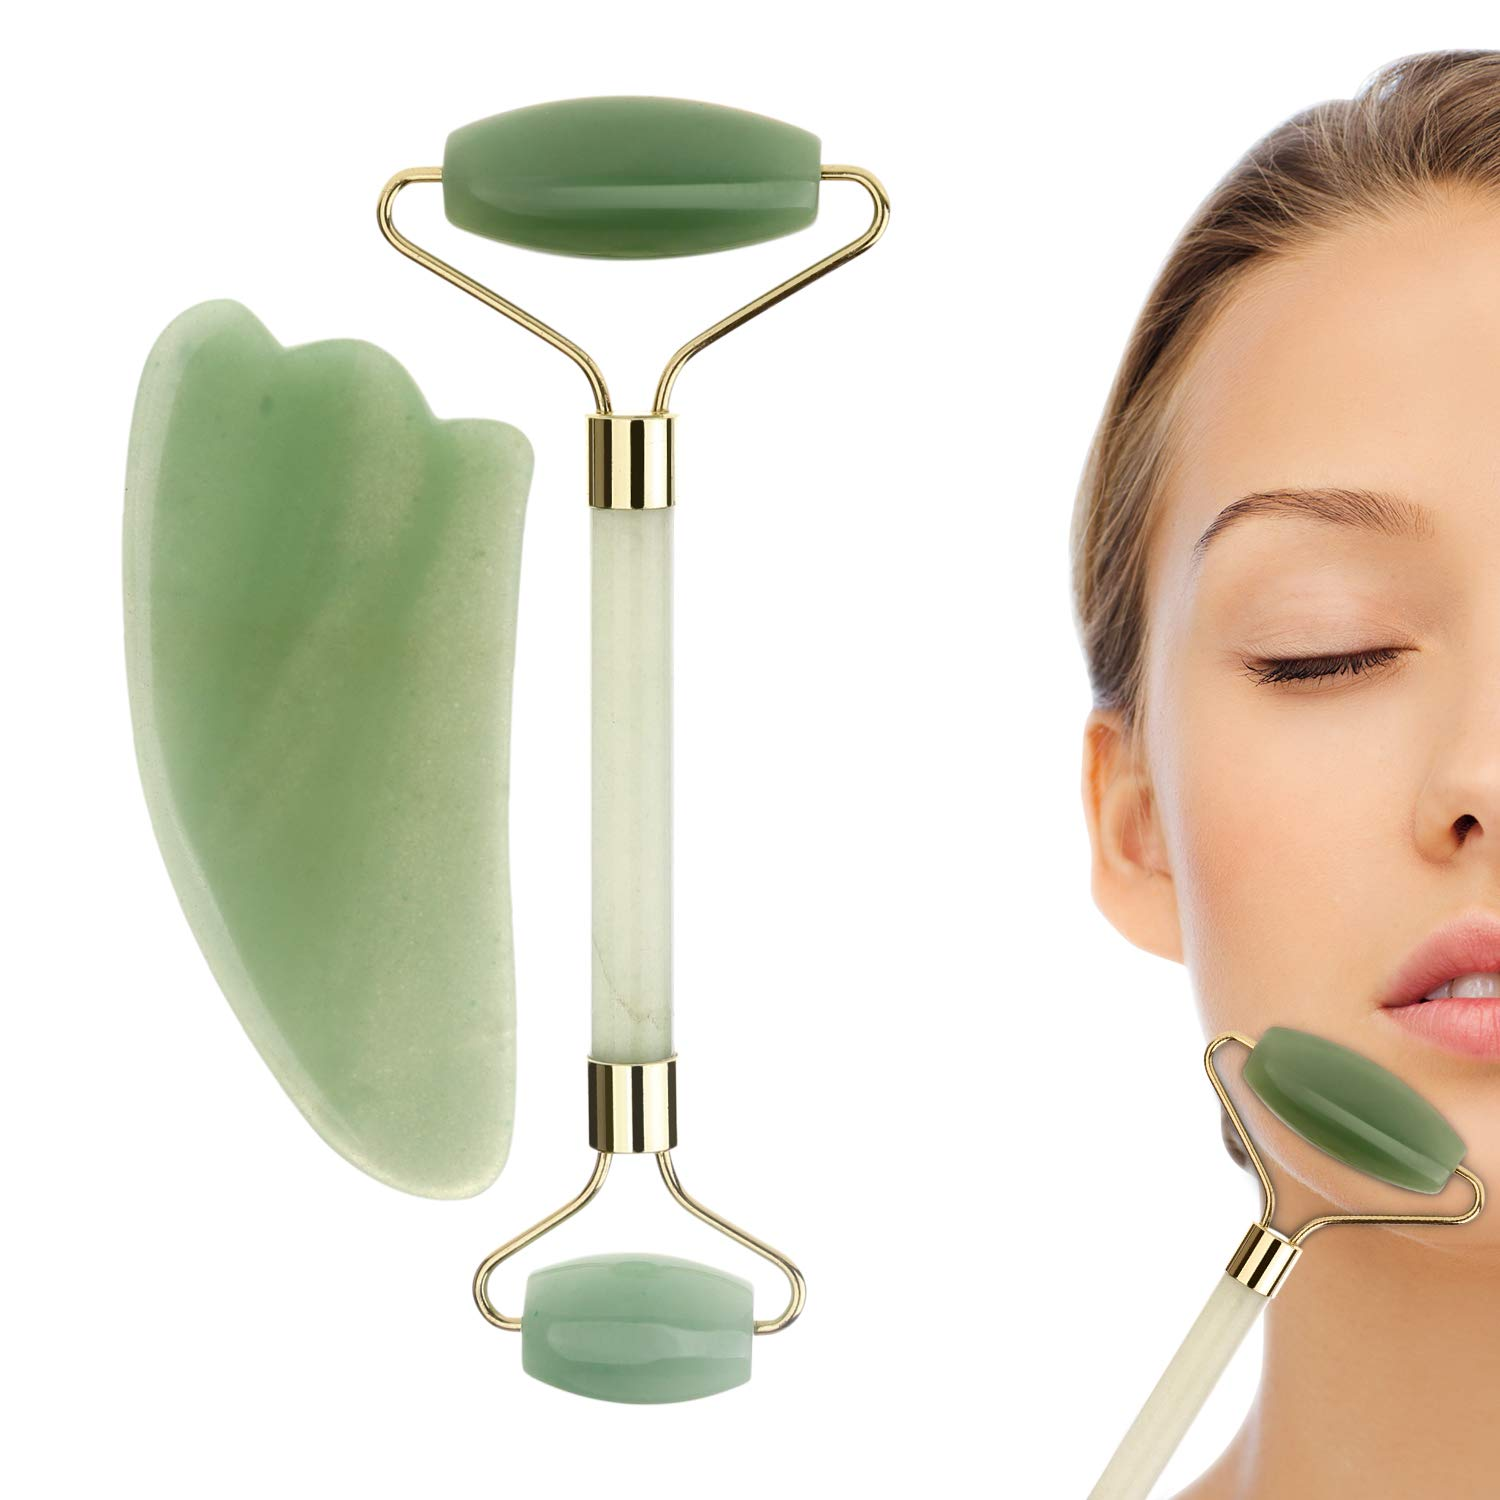 Jade Roller & Gua Sha Massage Tool Set, 100% All-Natural jade, Highly Potent, Anti Aging Wrinkle, Facial Massager Therapy, Clears Toxins, Reduces Puffiness, Double Neck Healing Slimming Massager YiFi-Tek